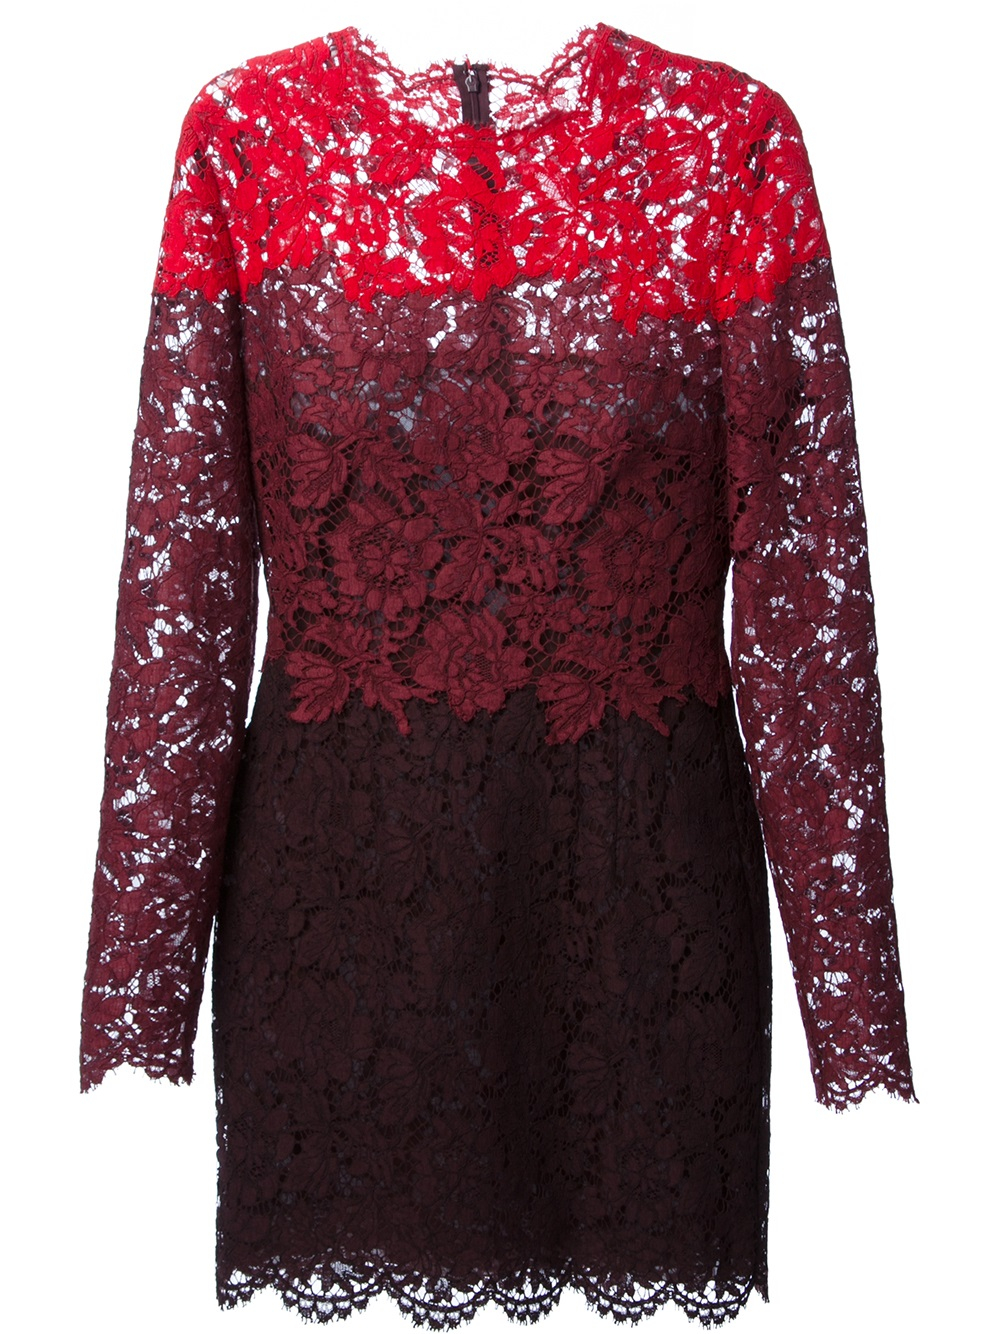 Valentino Floral Lace Embroidered Dress In Purple Red Lyst